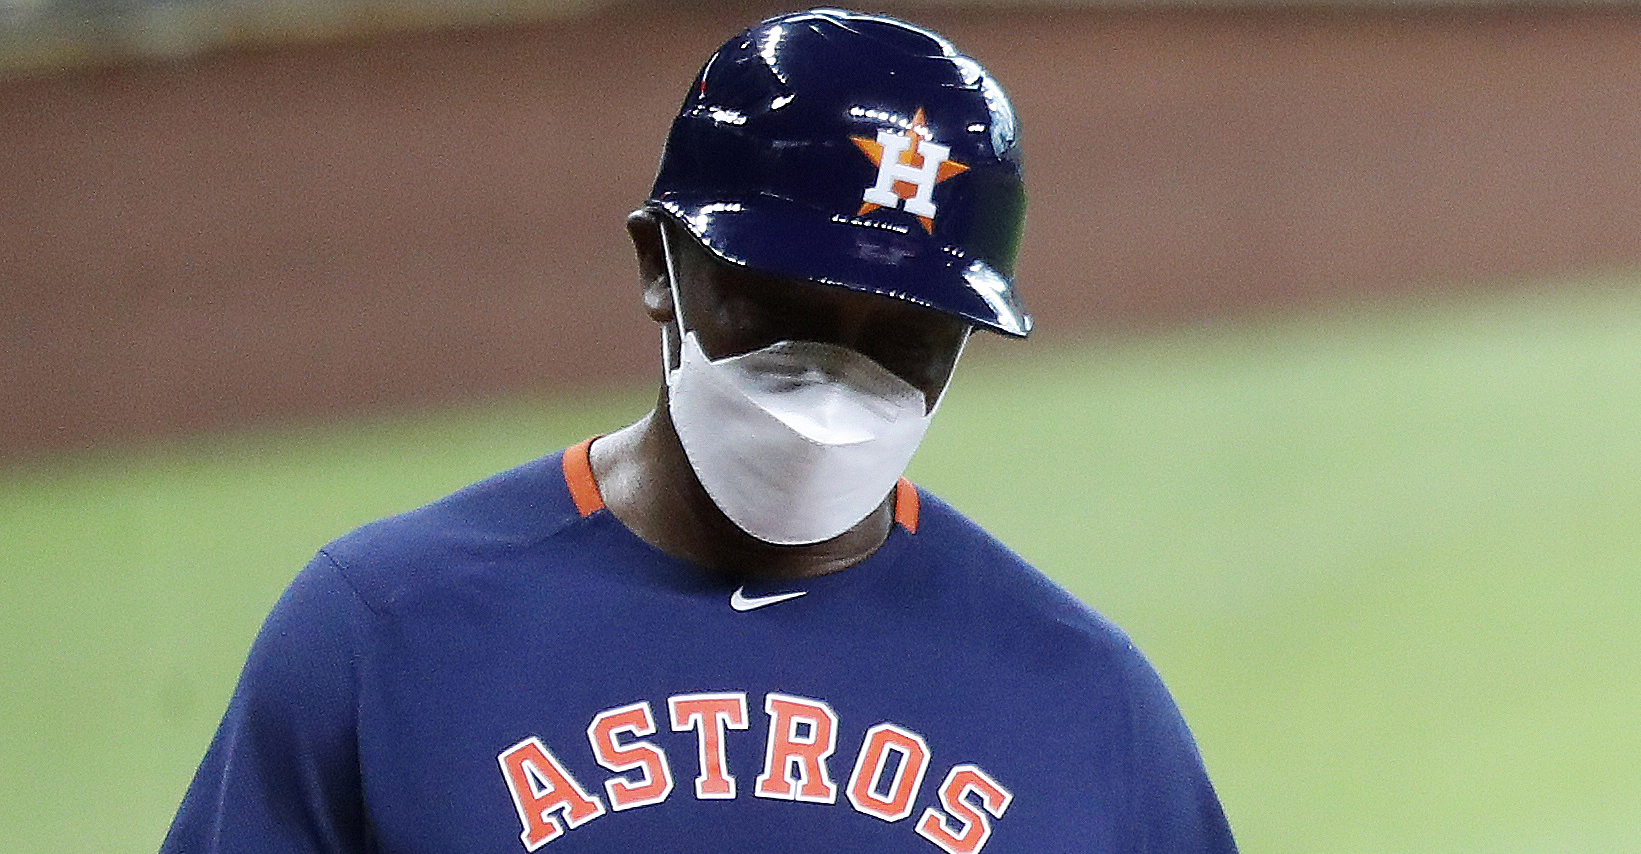 Astros third base coach Gary Pettis will not travel with team on road trip